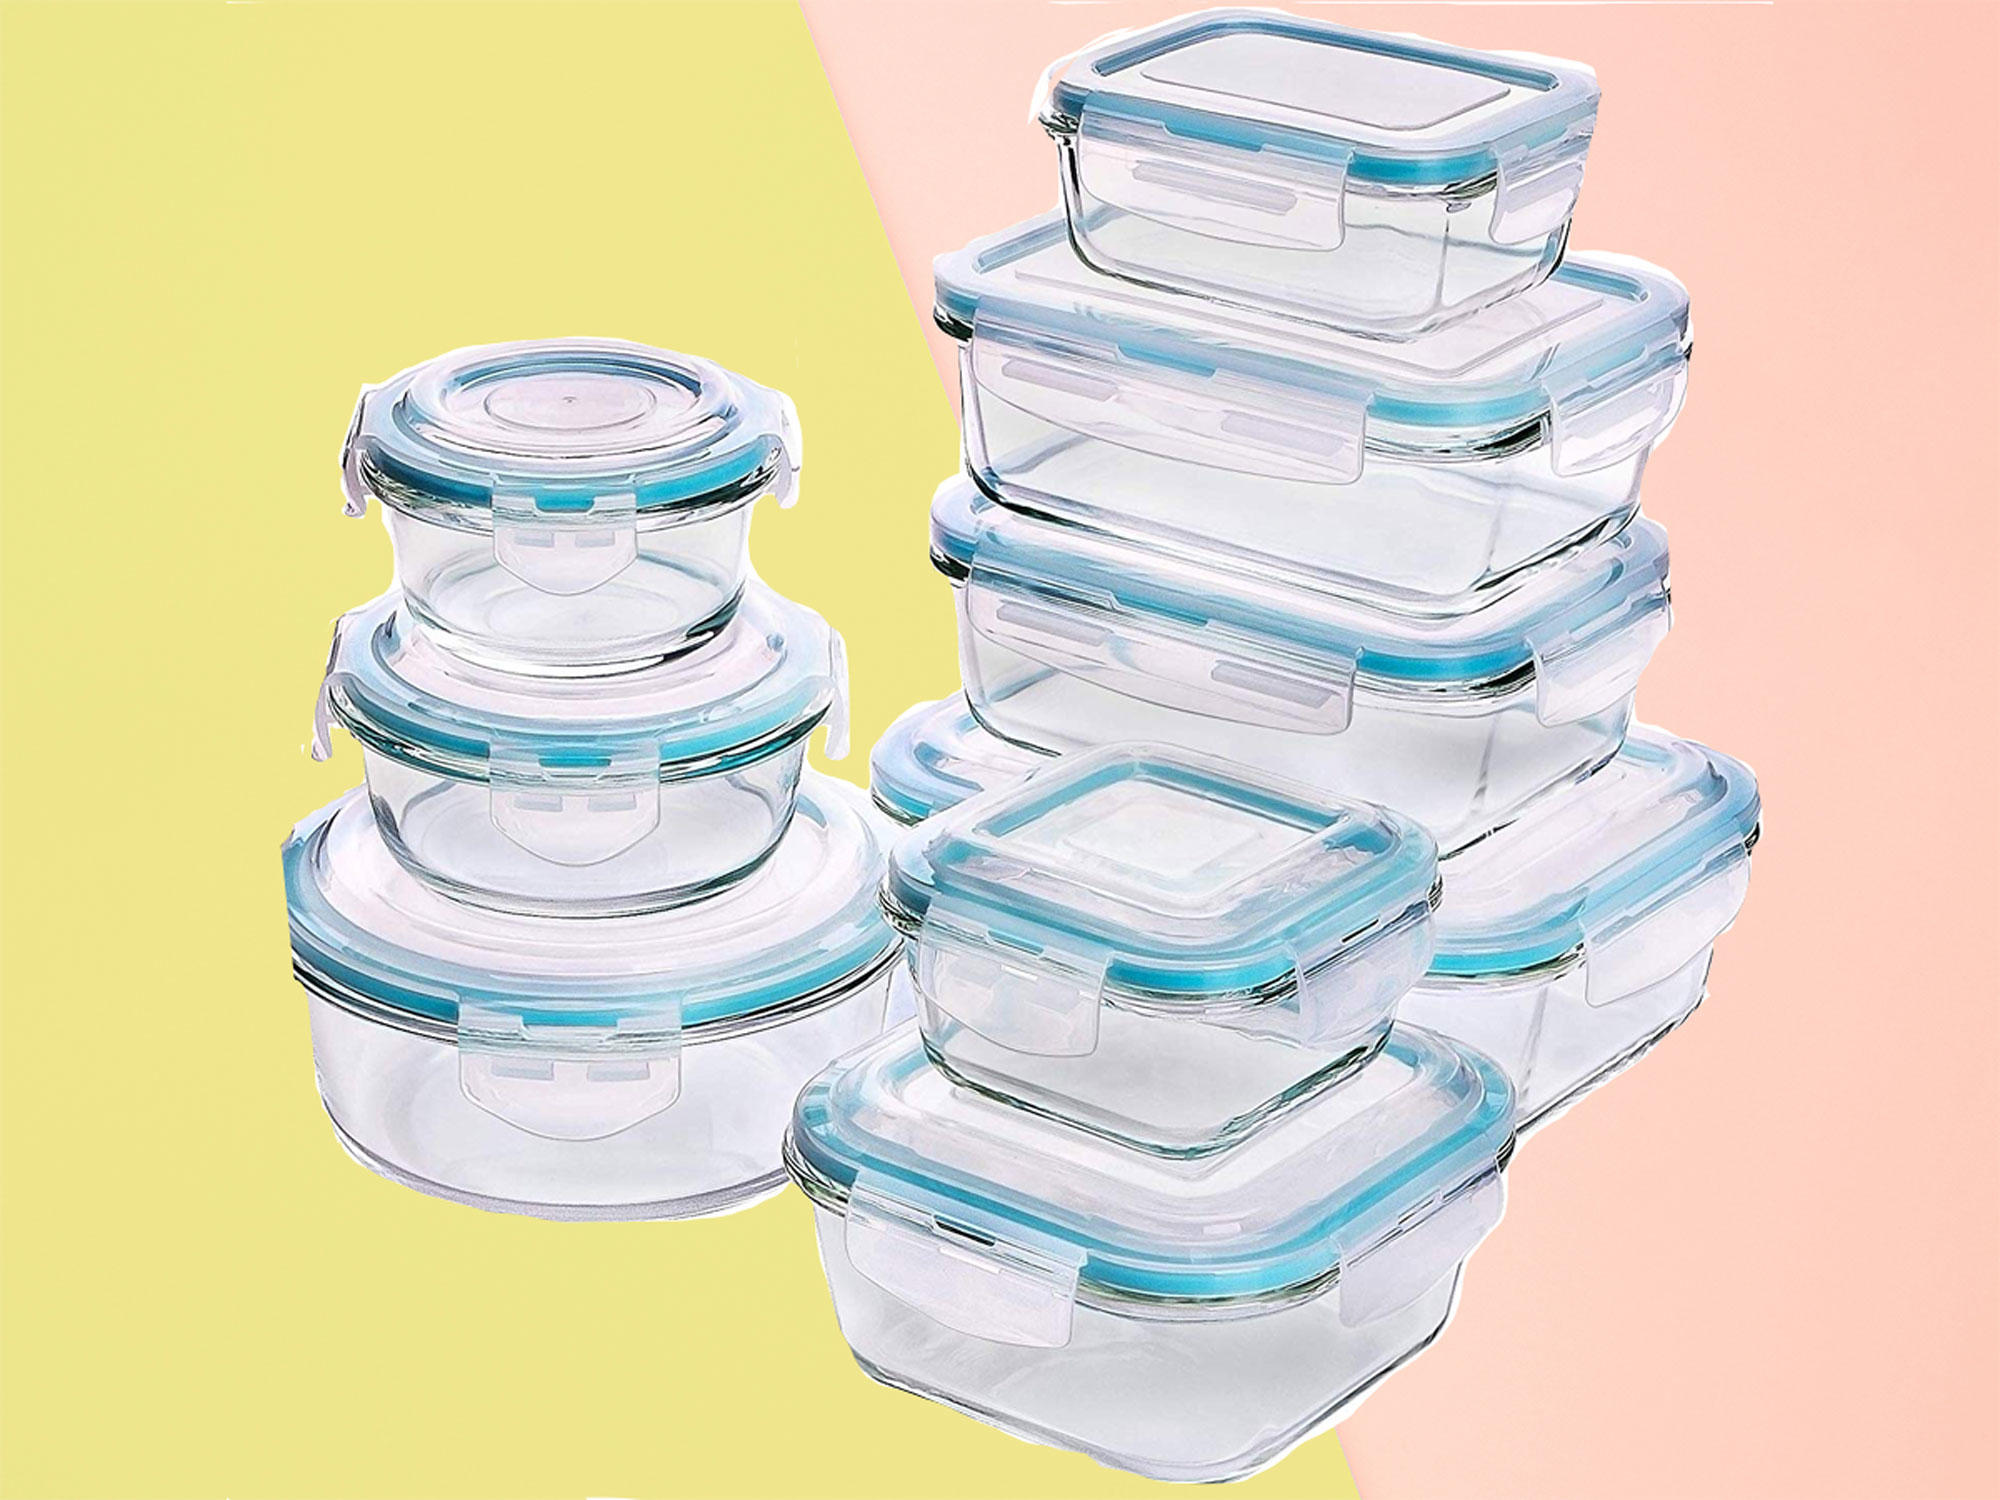 These Are the Highest-Rated Meal Prep Containers on Amazon Prime meal-prep-containers-5